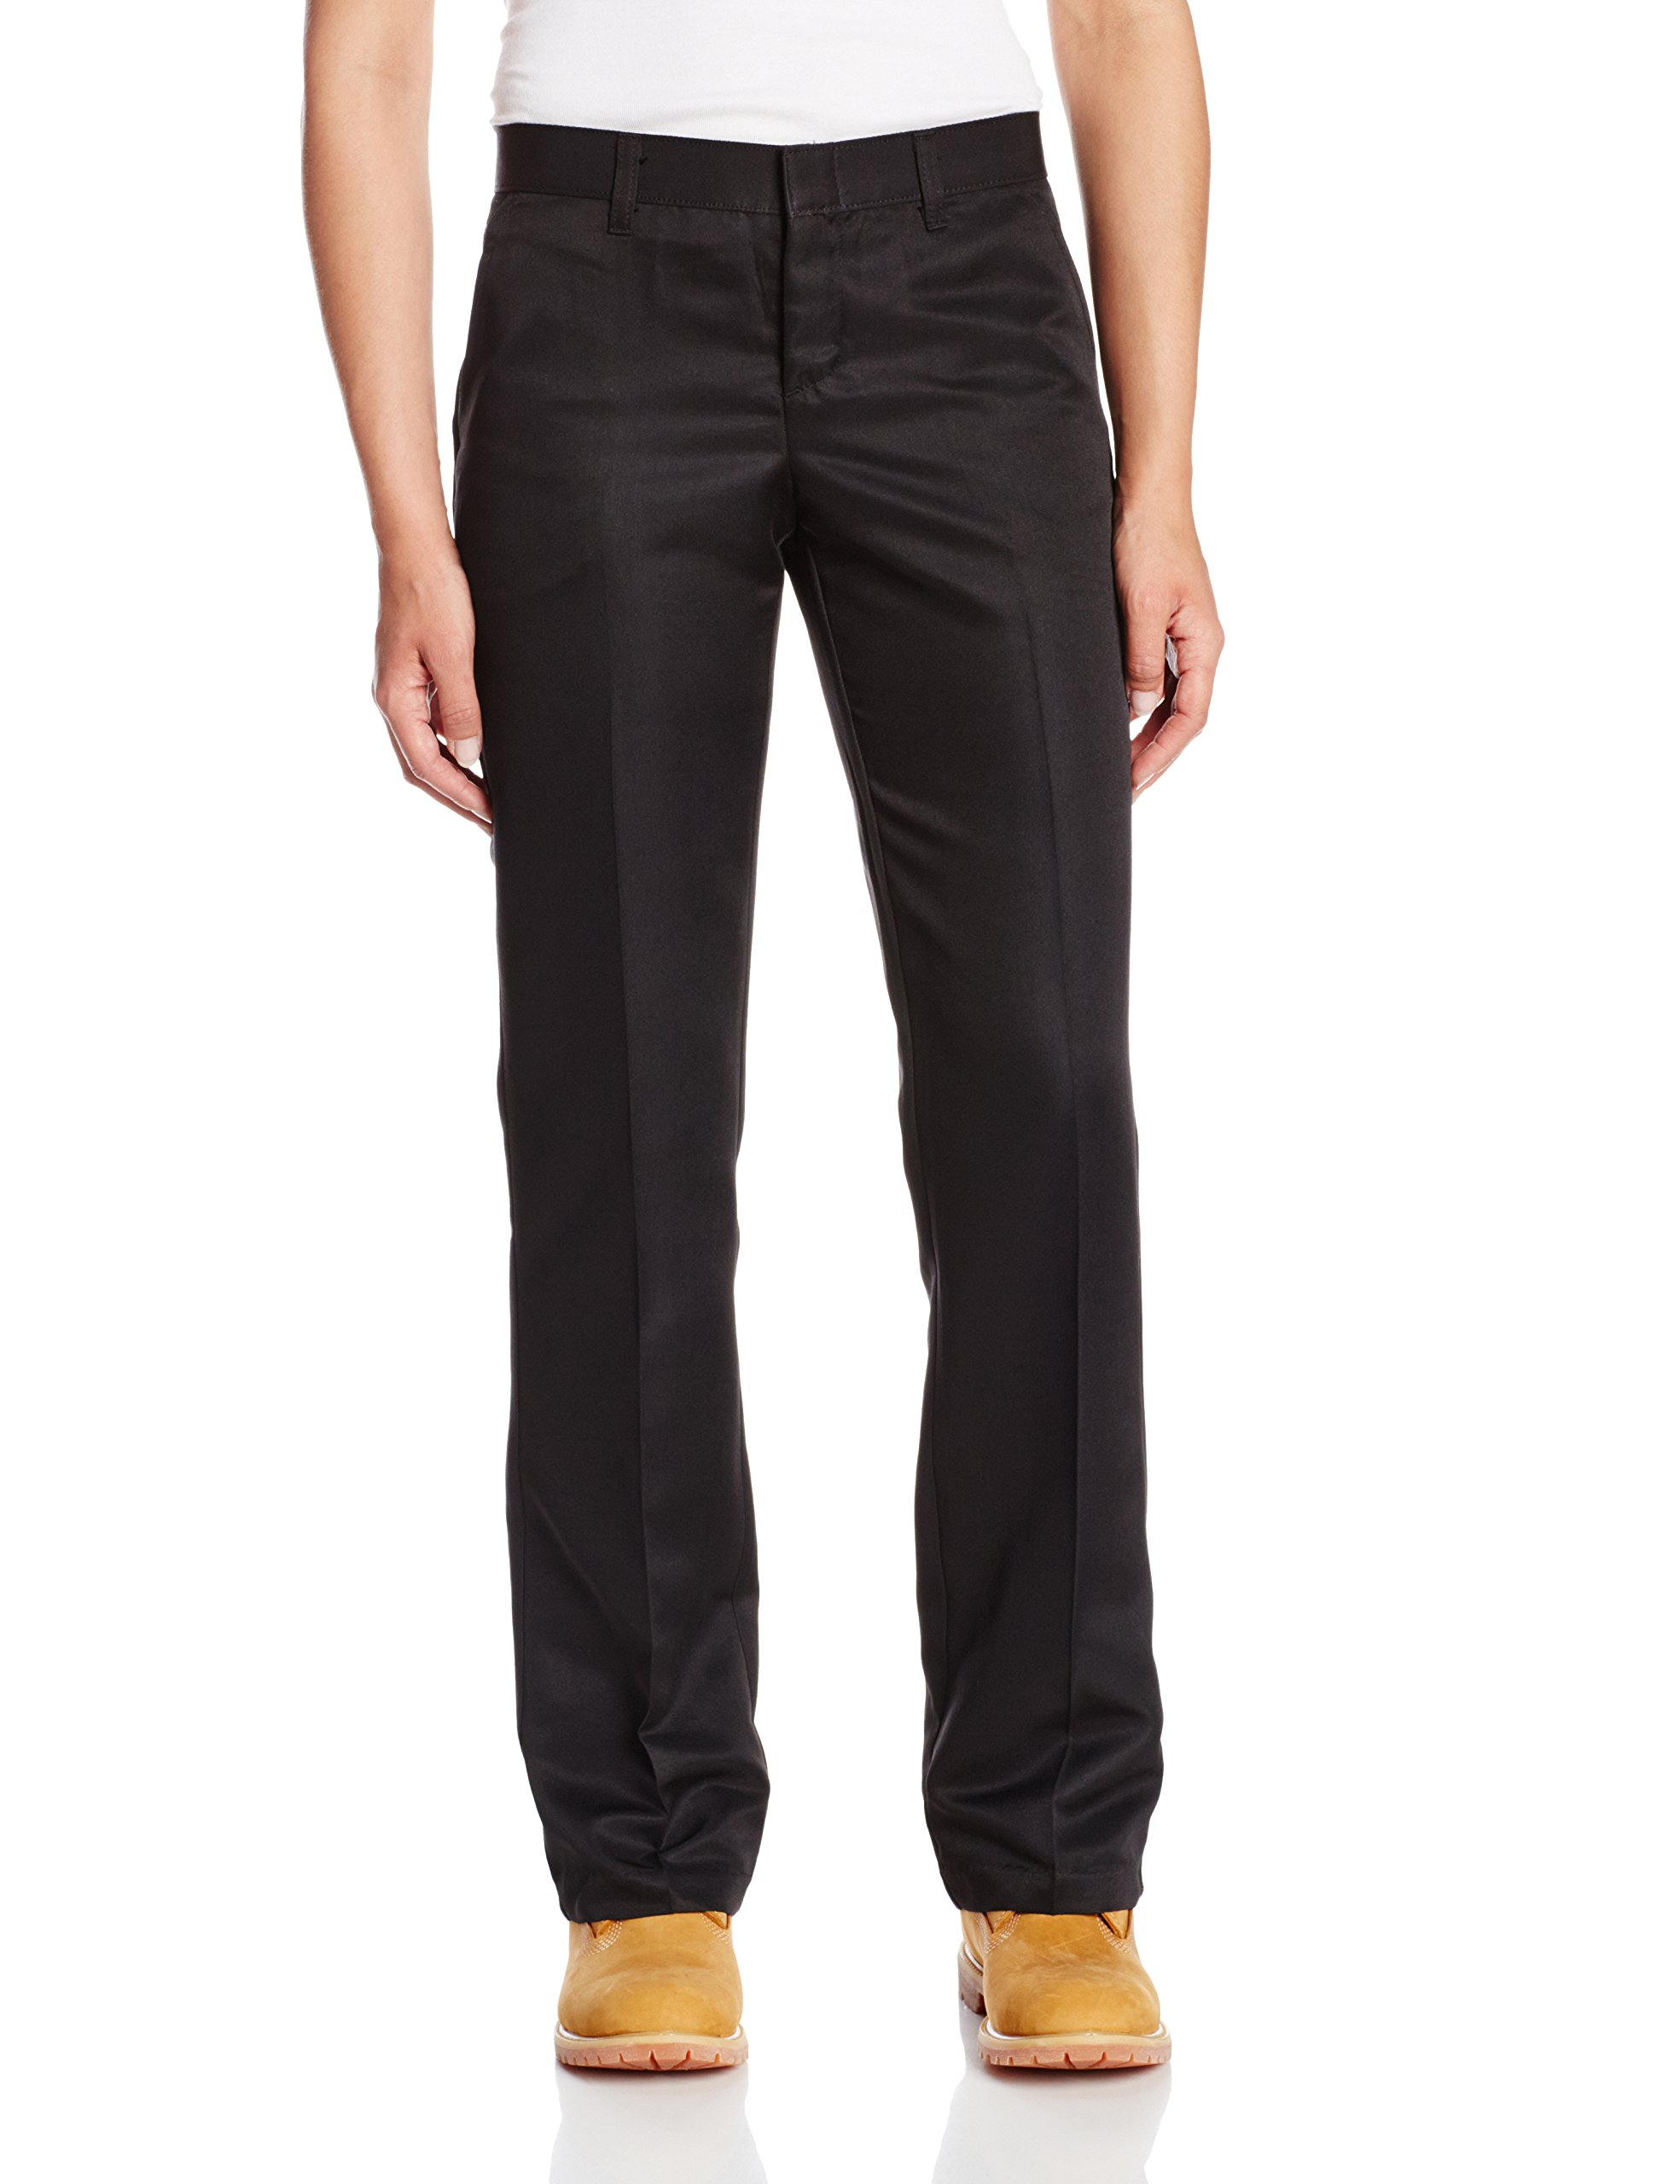 Dickies Occupational Workwear FP831BK 4 RG Polyester Relaxed Fit Women's Micro Denier Executive Pant with Straight Leg, 4 Regular, 31-1/ 2'' Inseam, Black